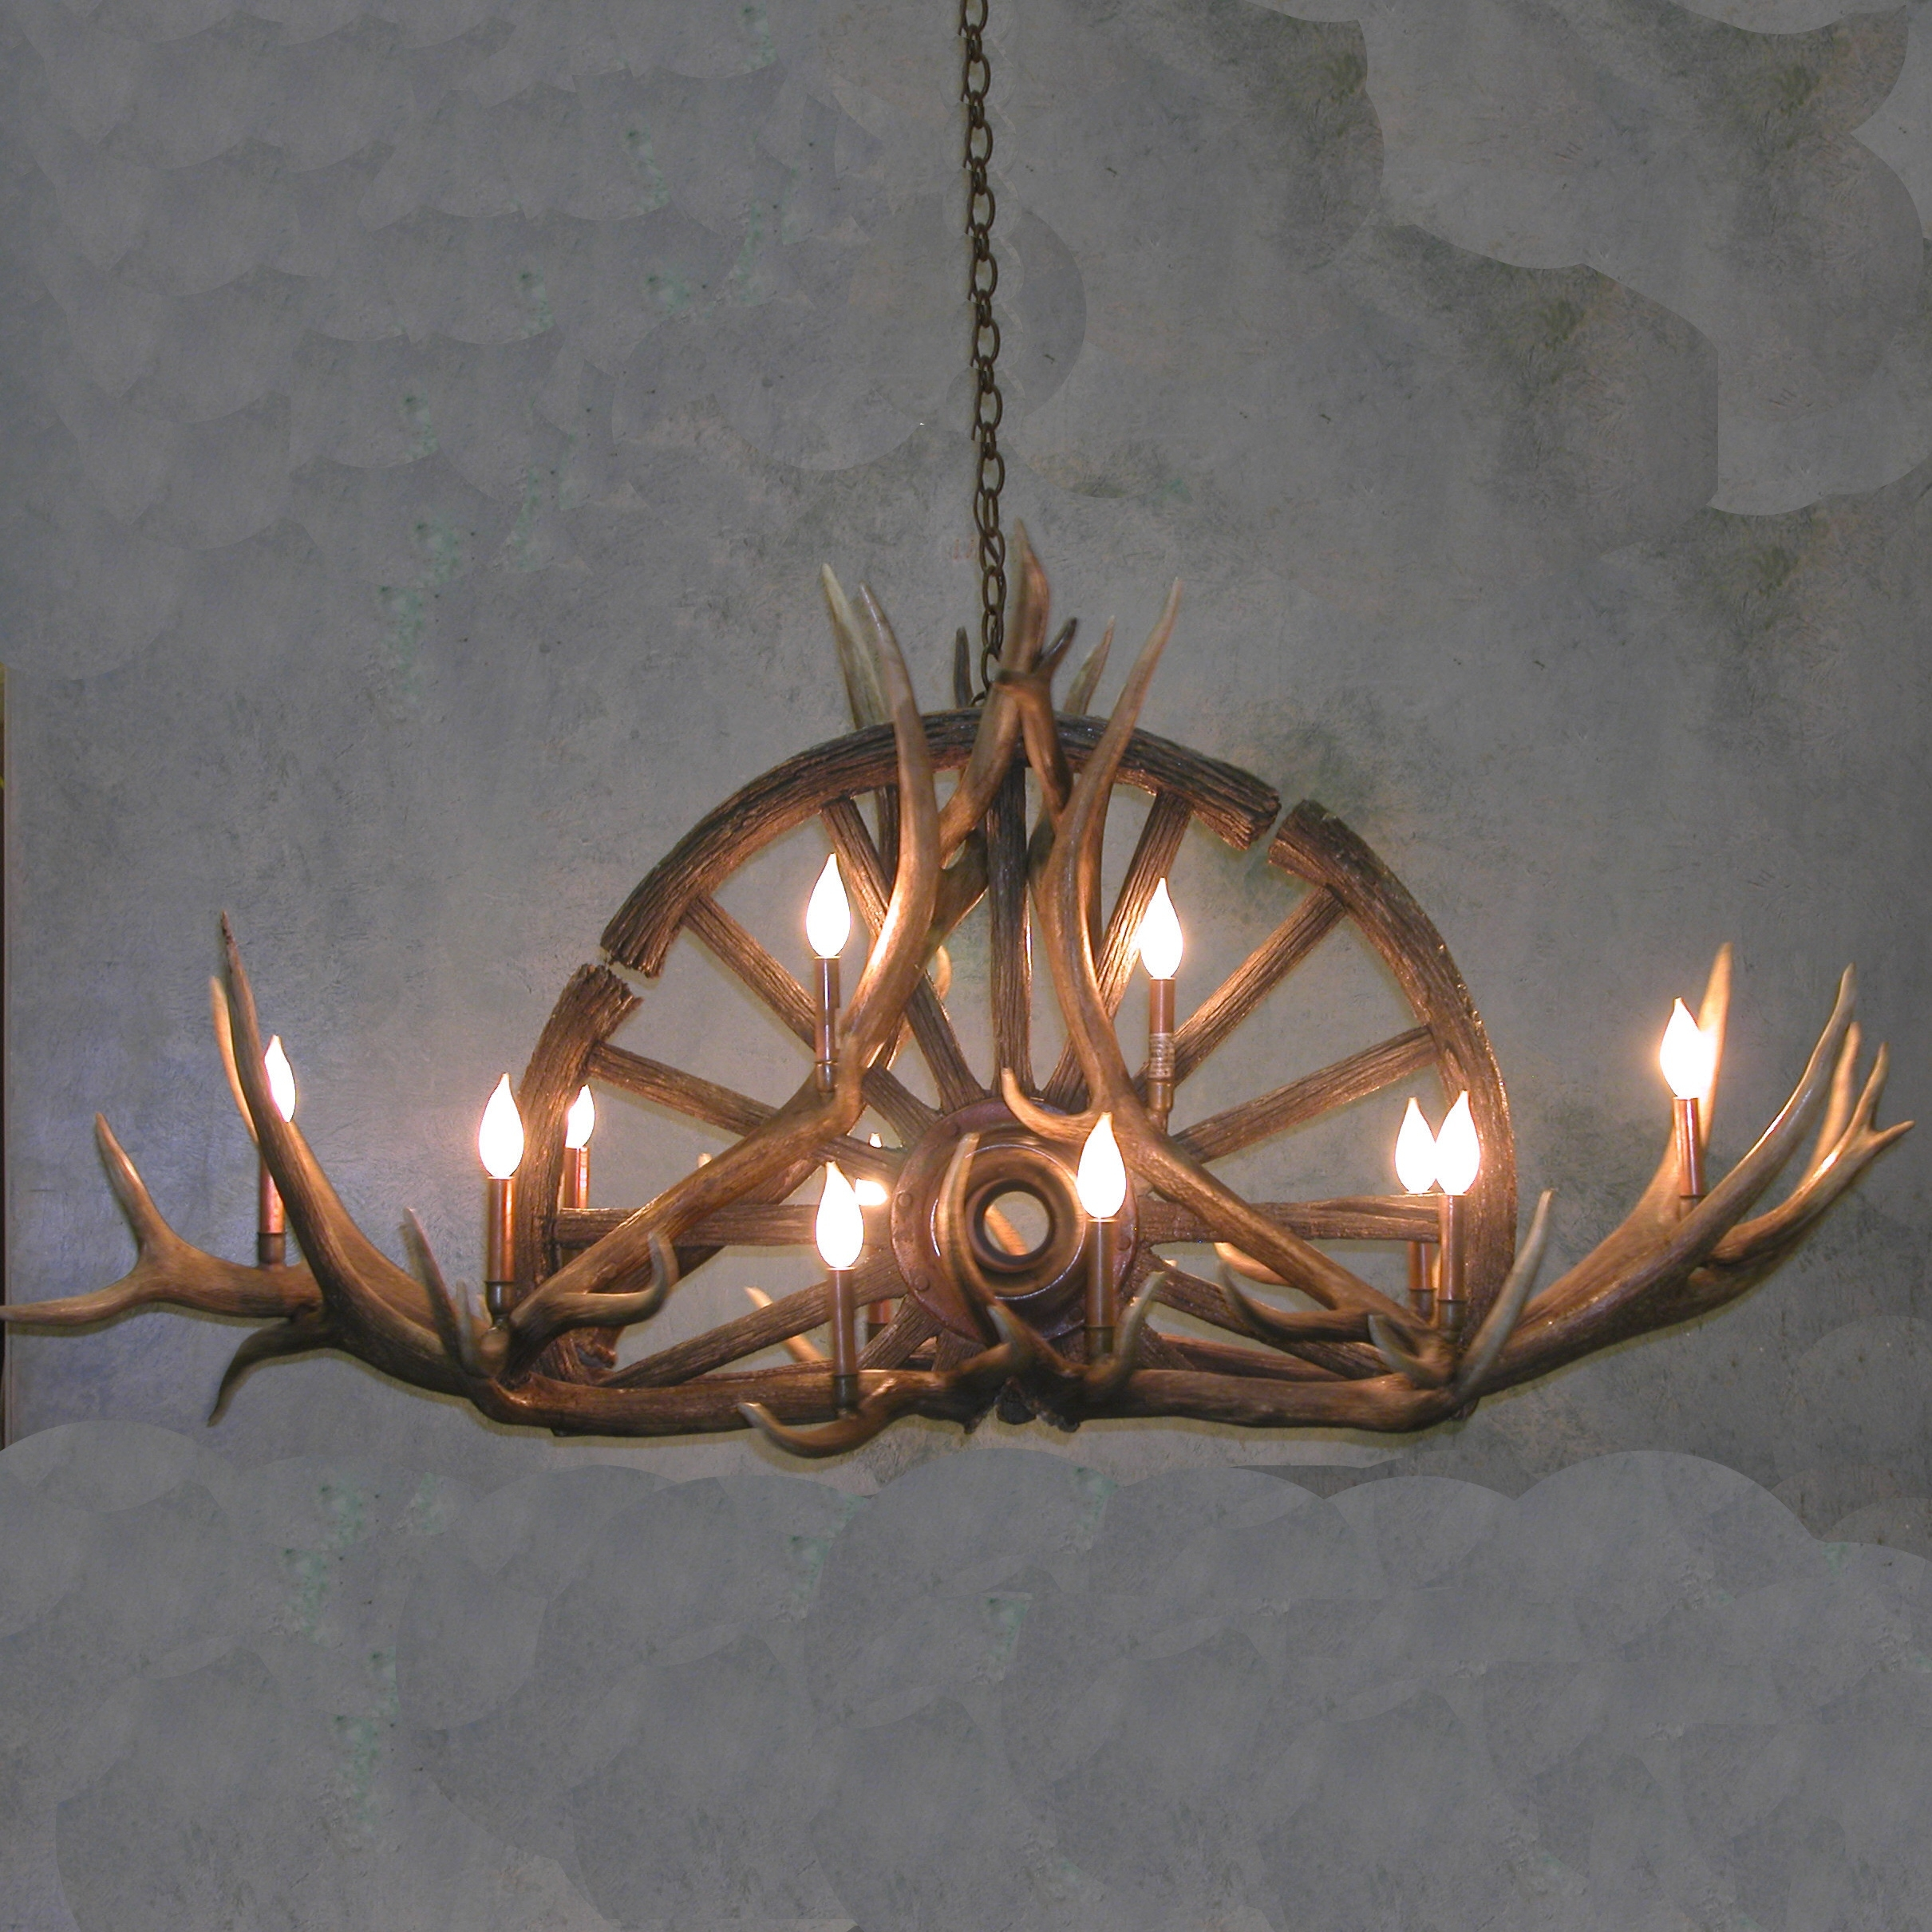 Sundial Wagon Wheel Antler Chandelier Regarding Antler Chandeliers And Lighting (Image 11 of 15)